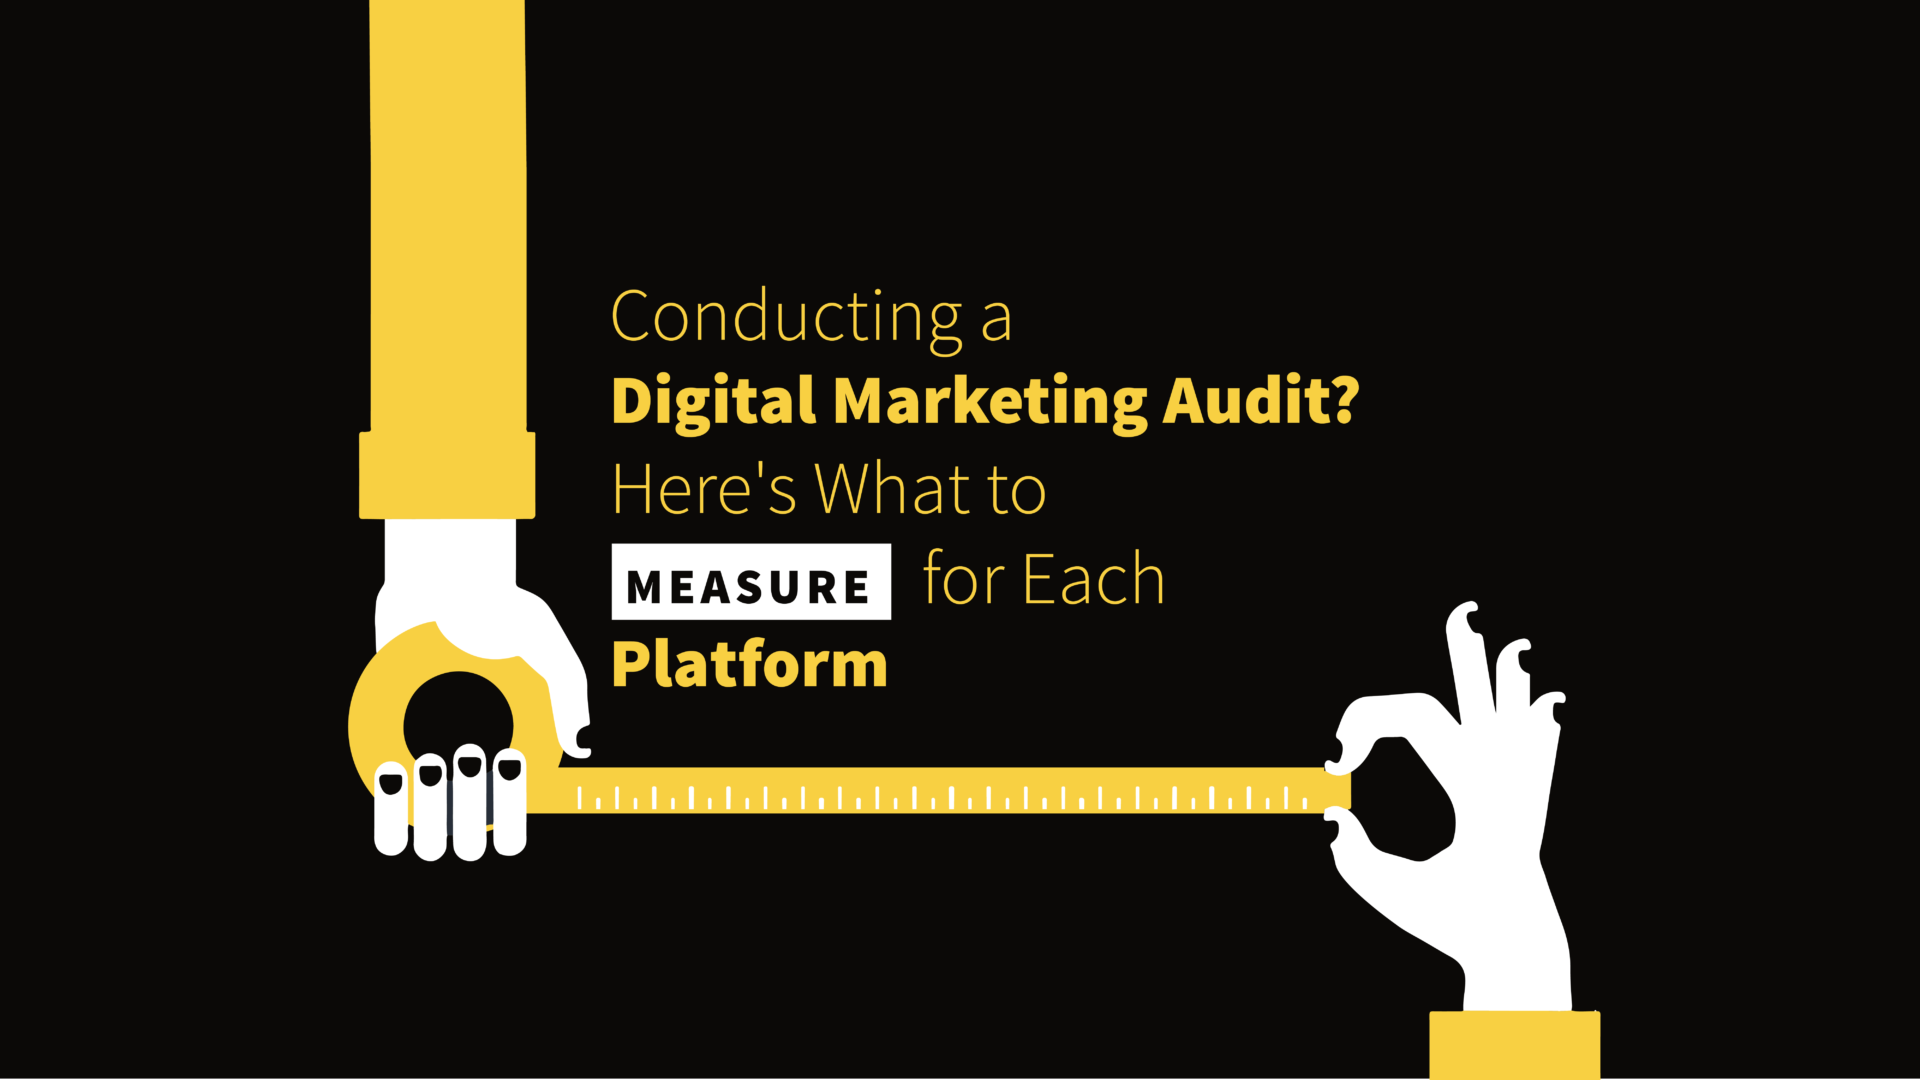 Conducting a Digital Marketing Audit? Here's What to Measure